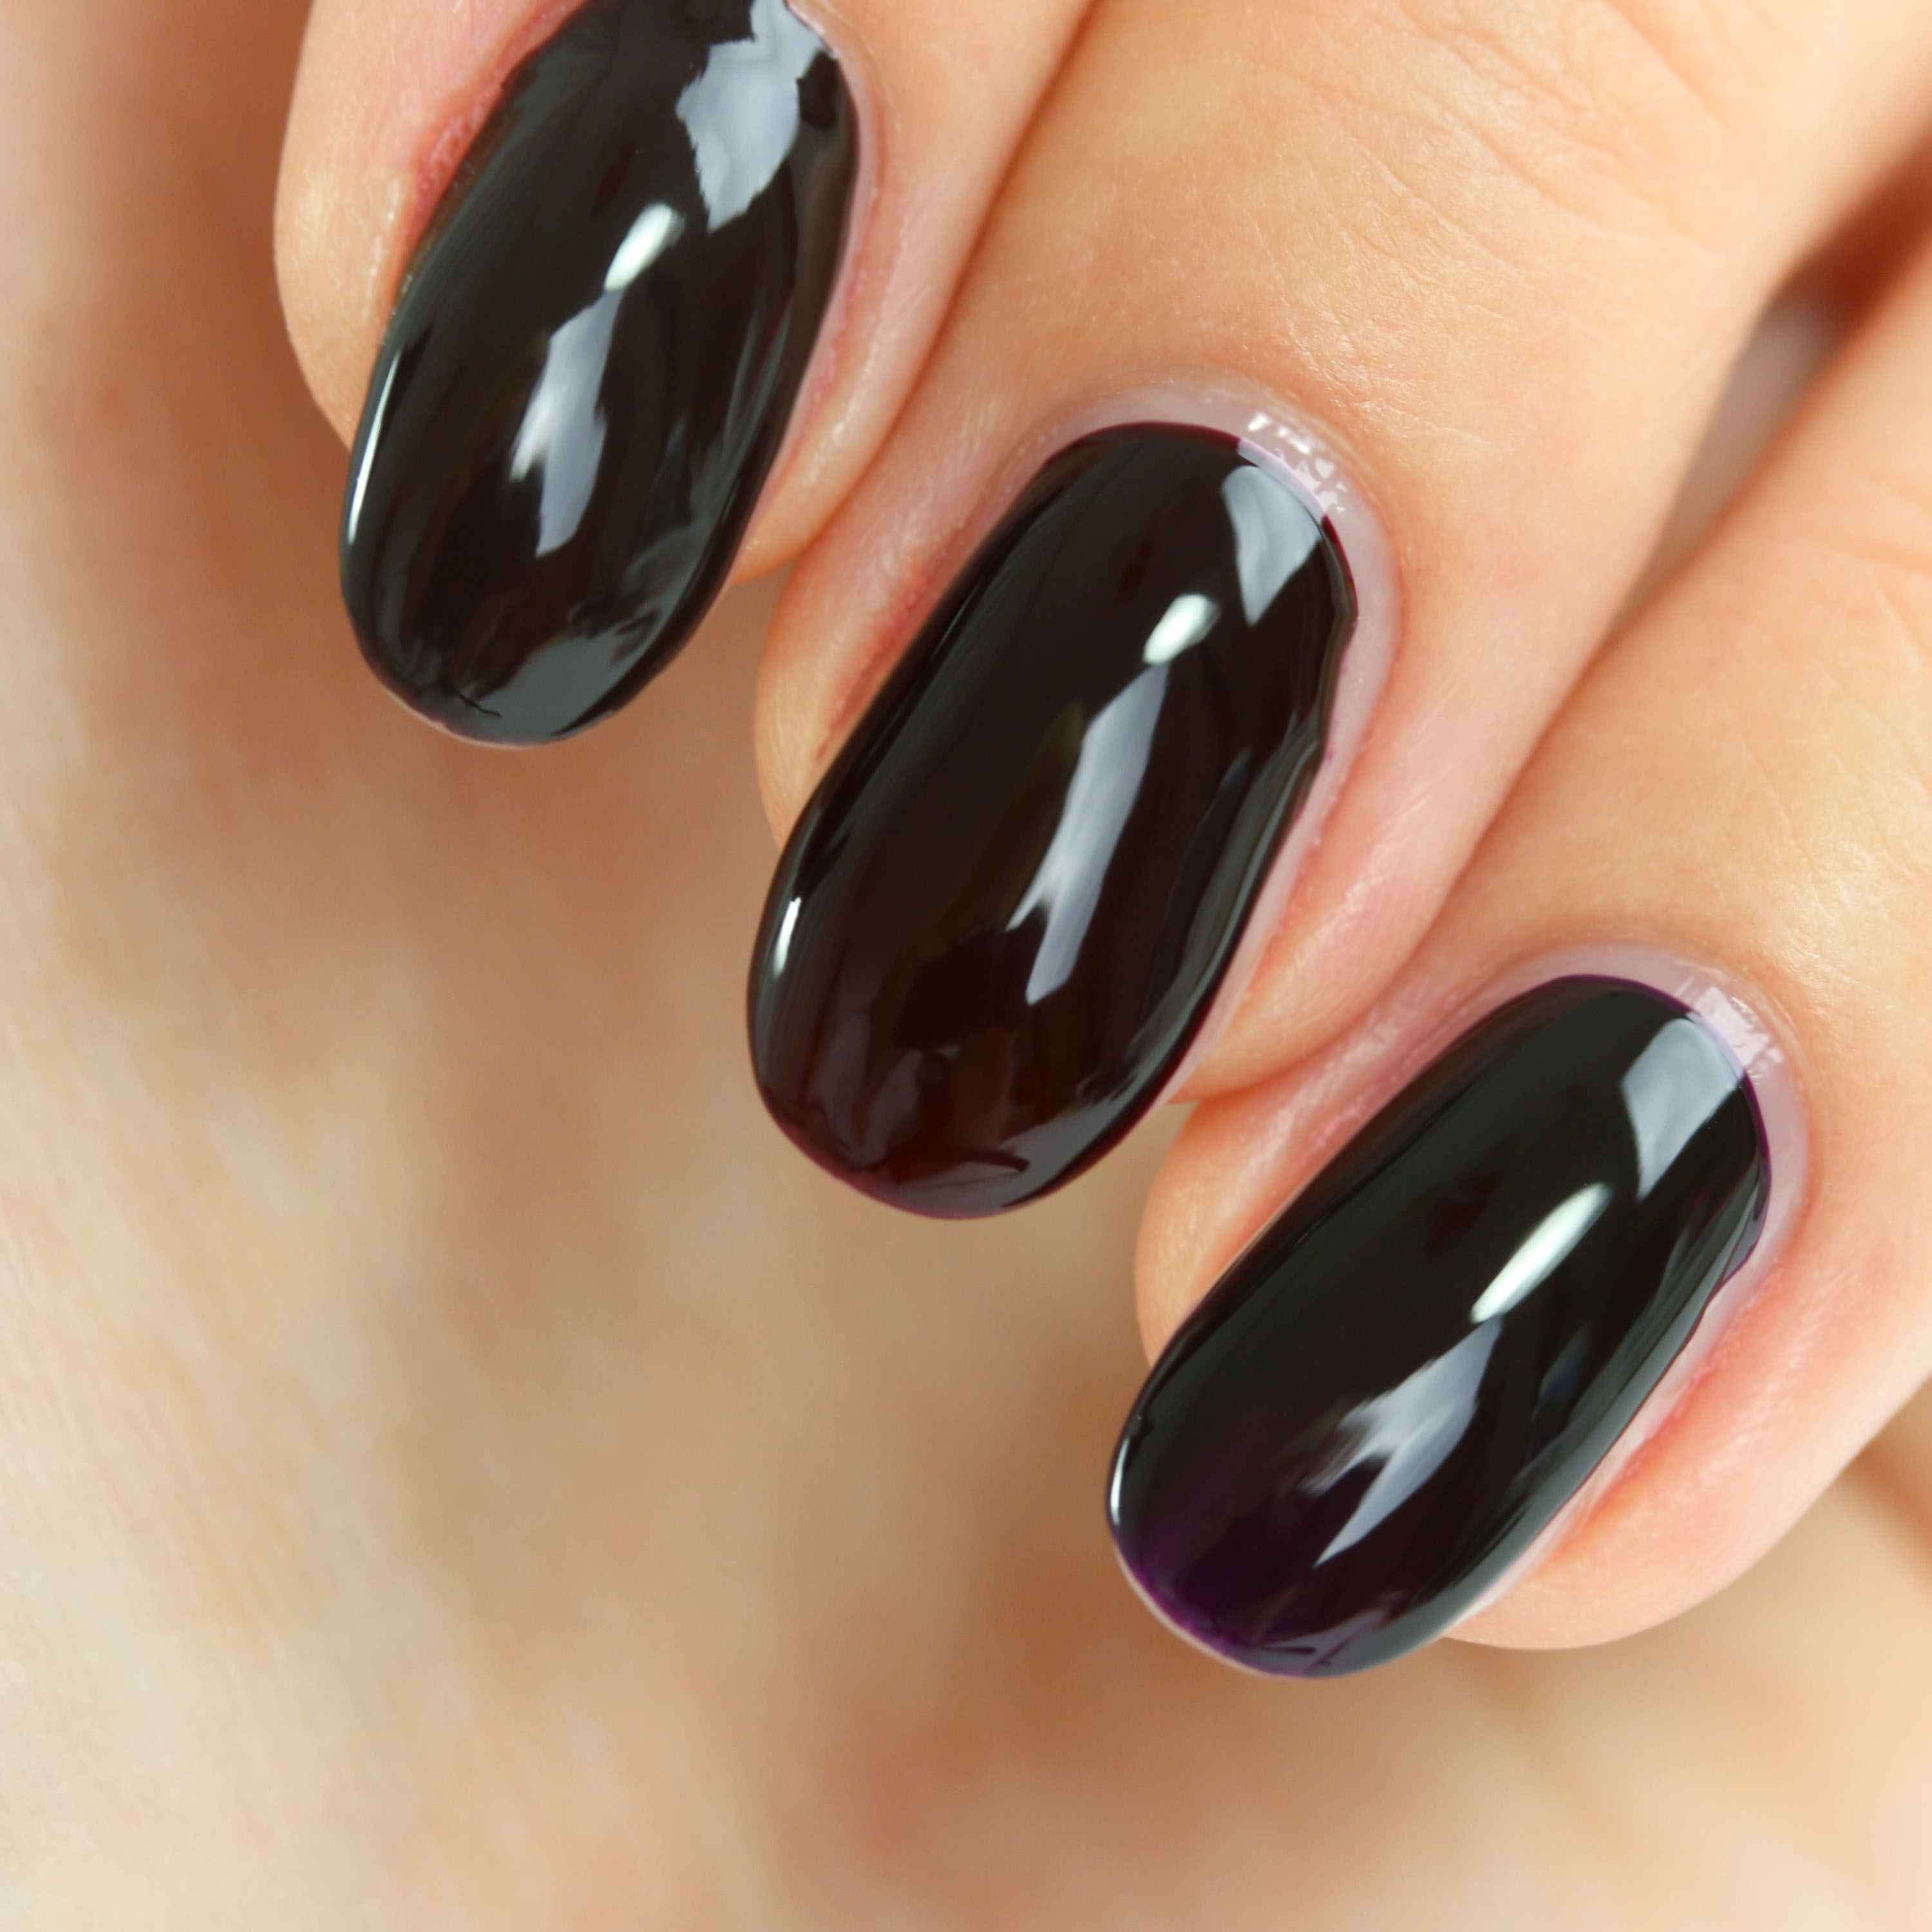 Catrice Noir Lacquer Swatches